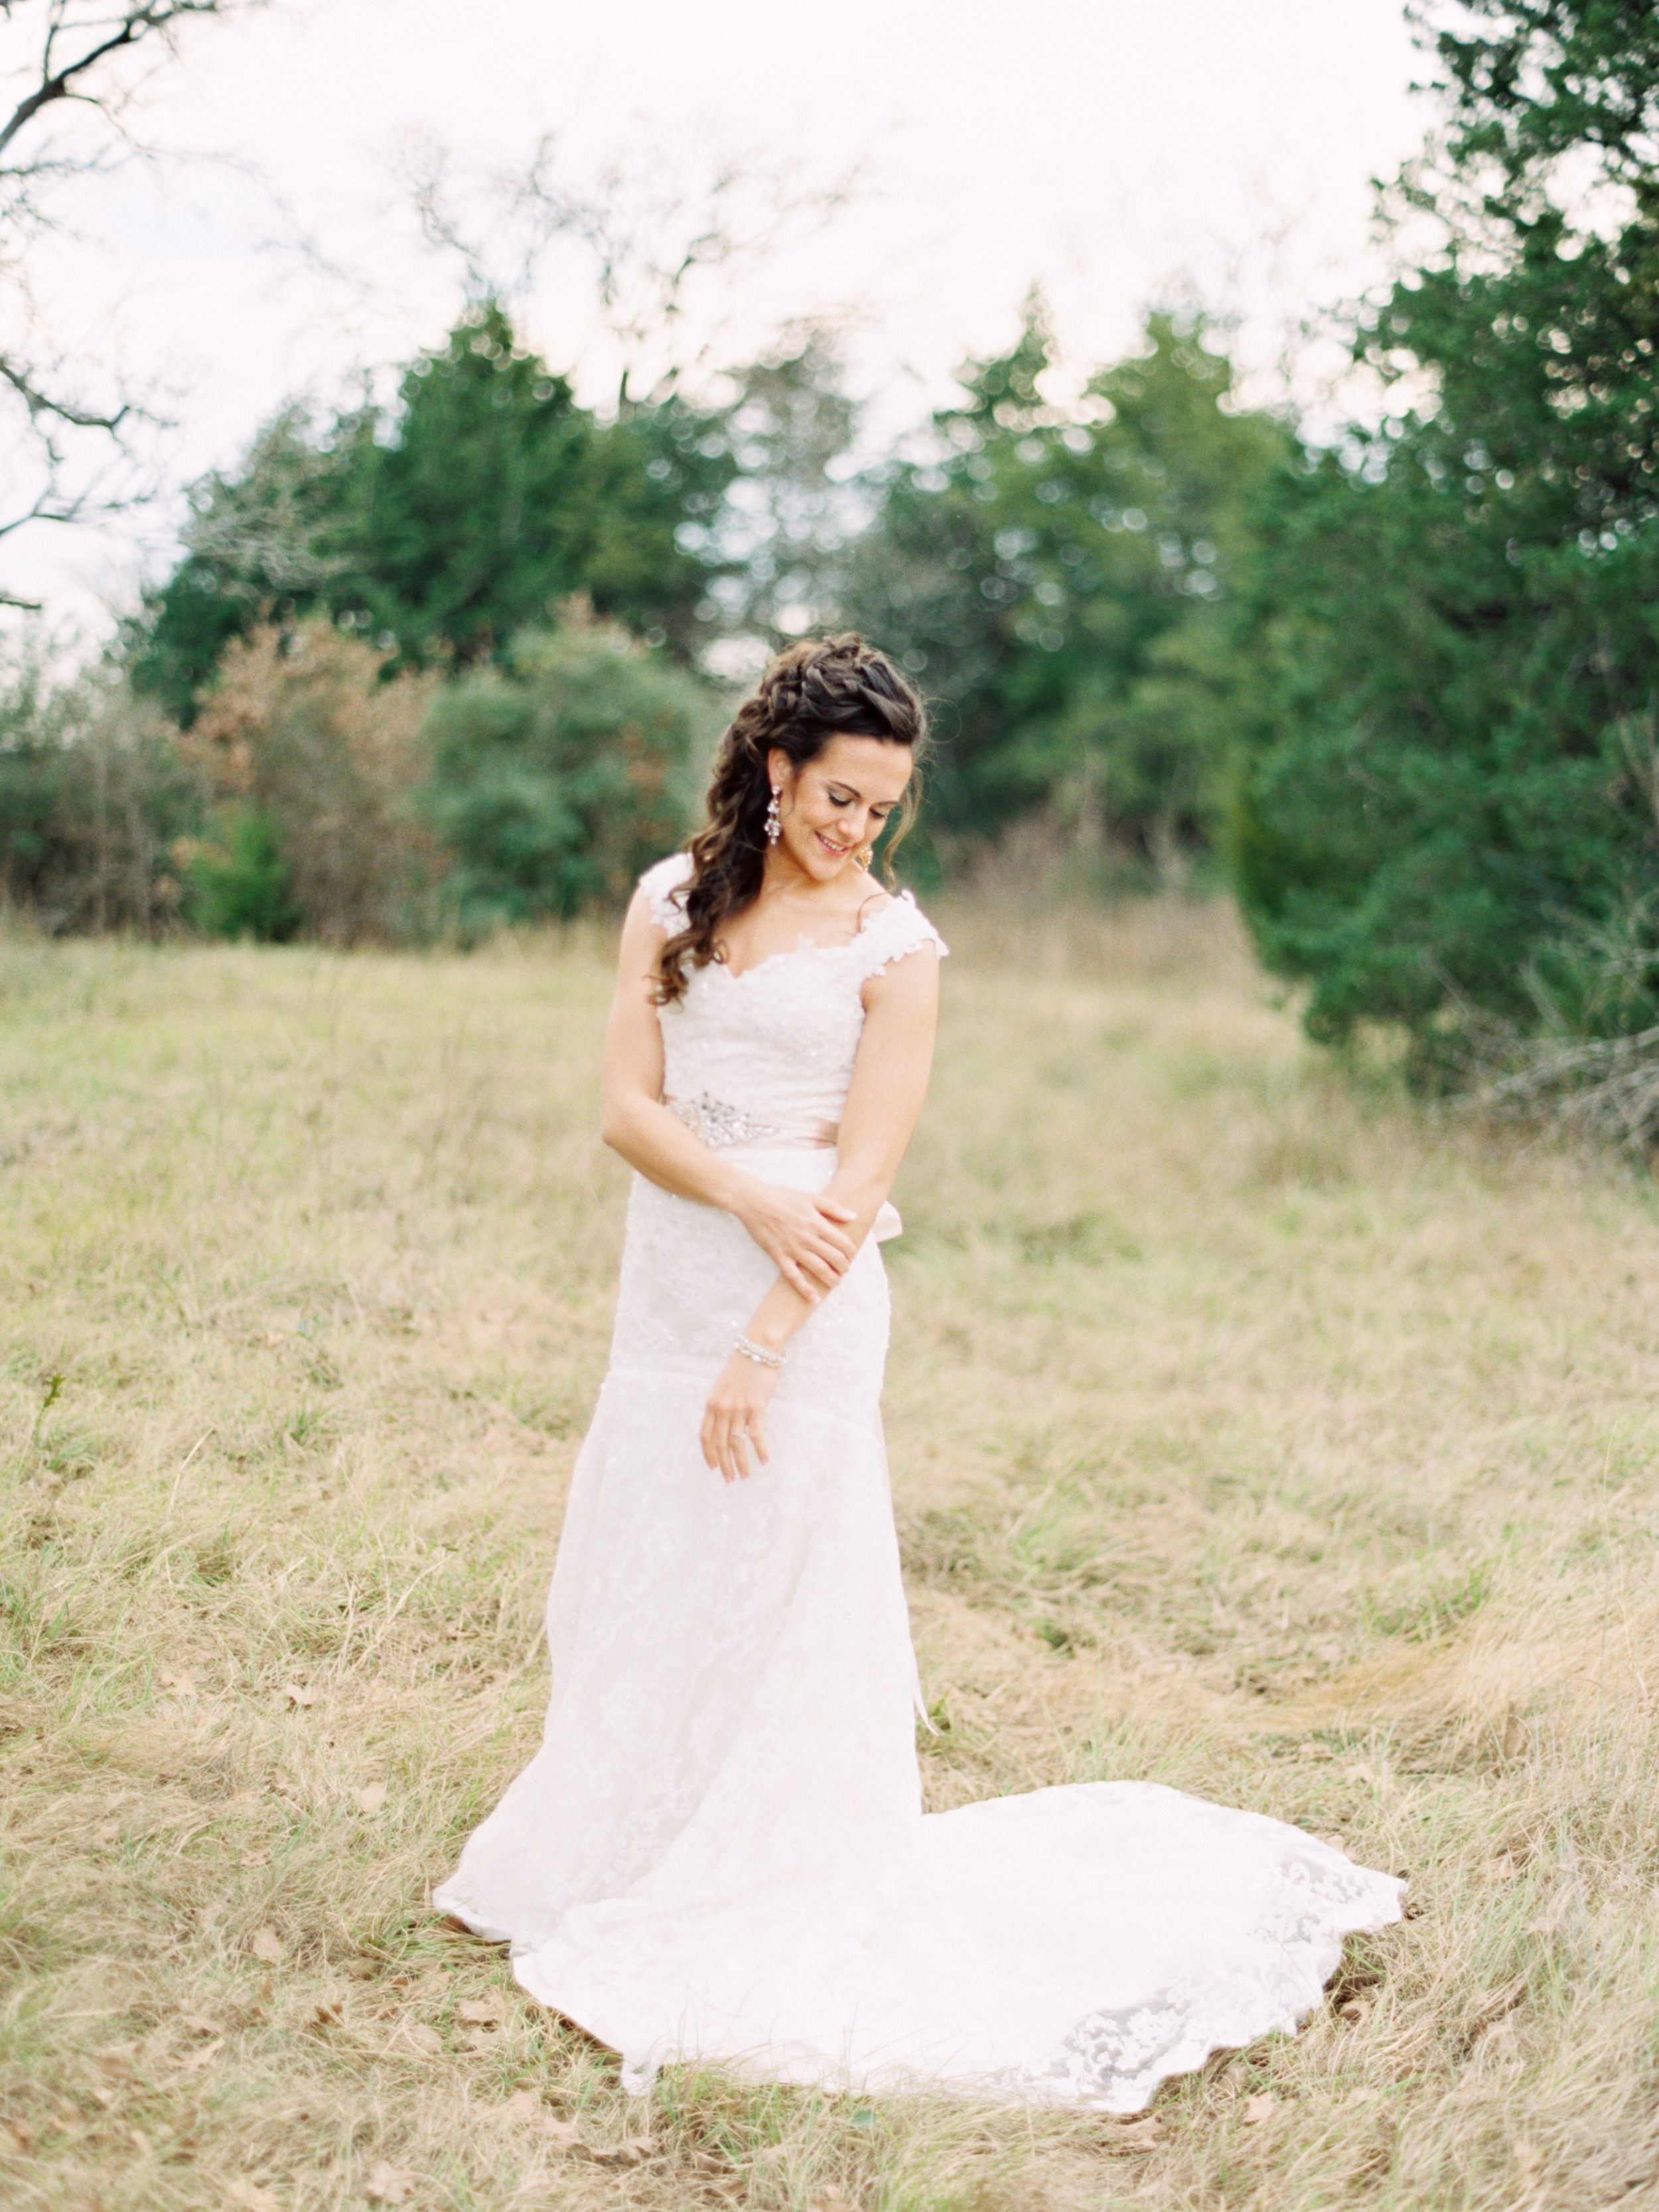 Sarah Best Photography - Emily's Bridals-103.jpg